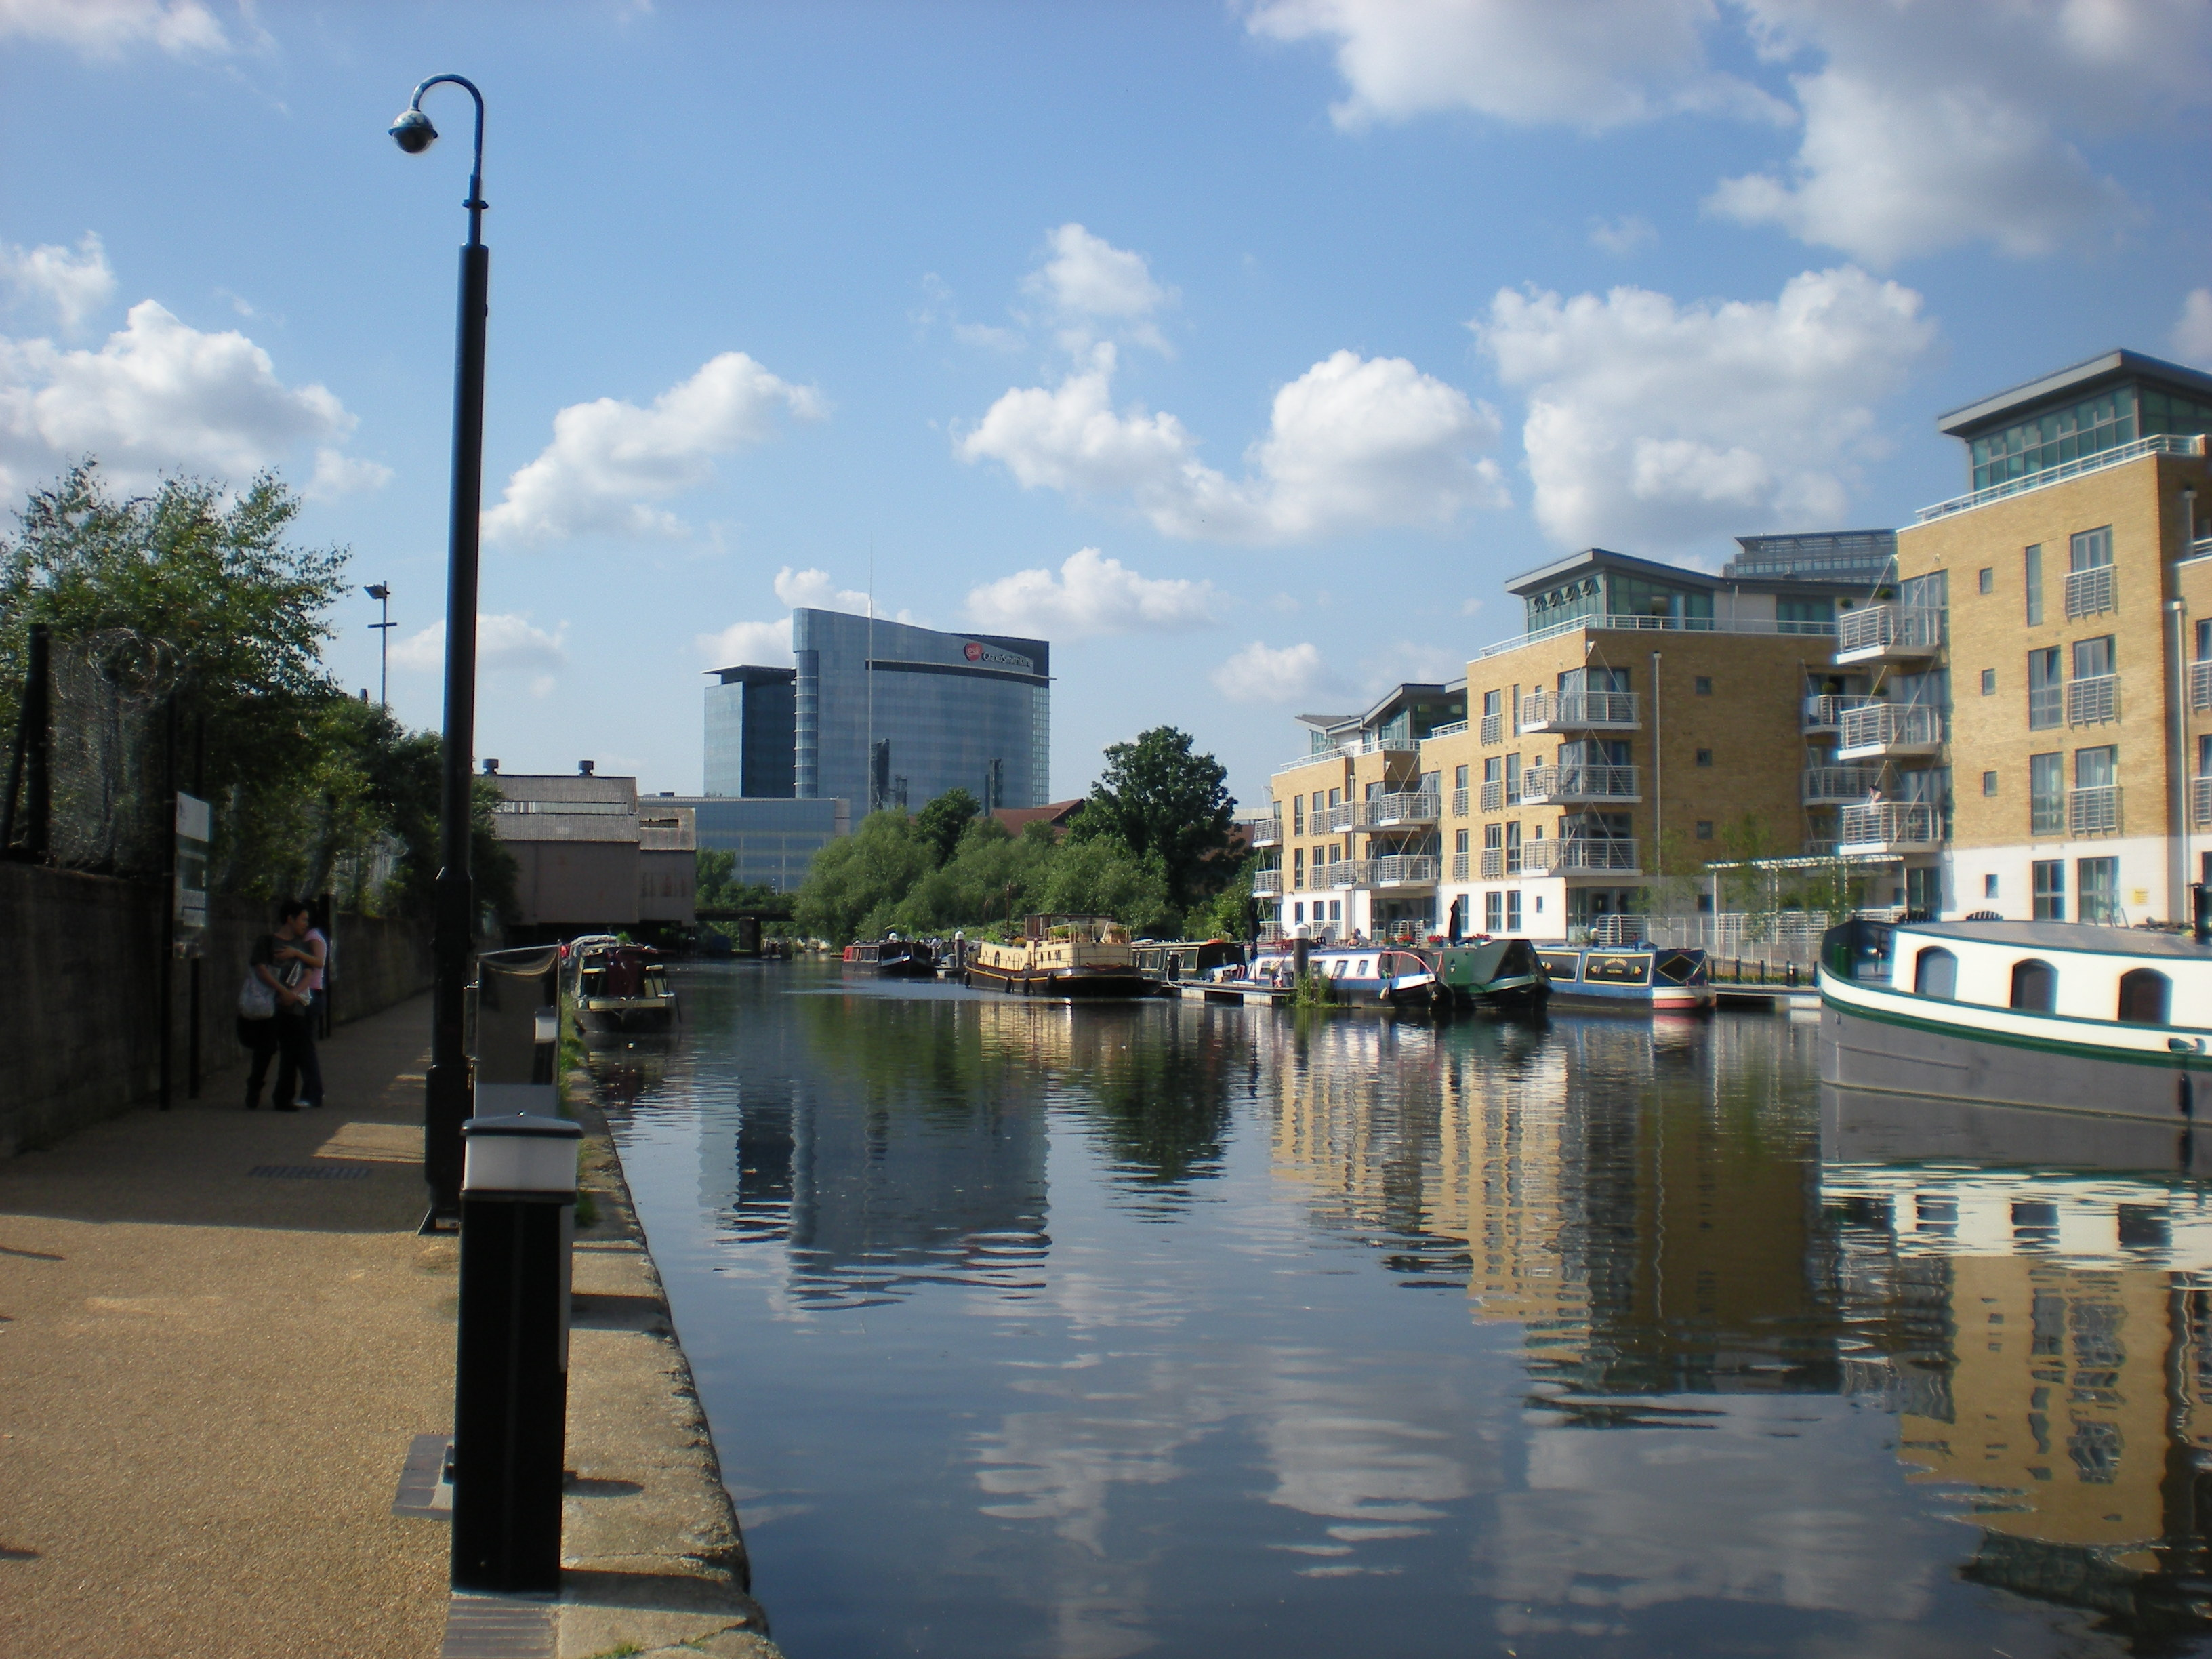 River Brent - Wikipedia